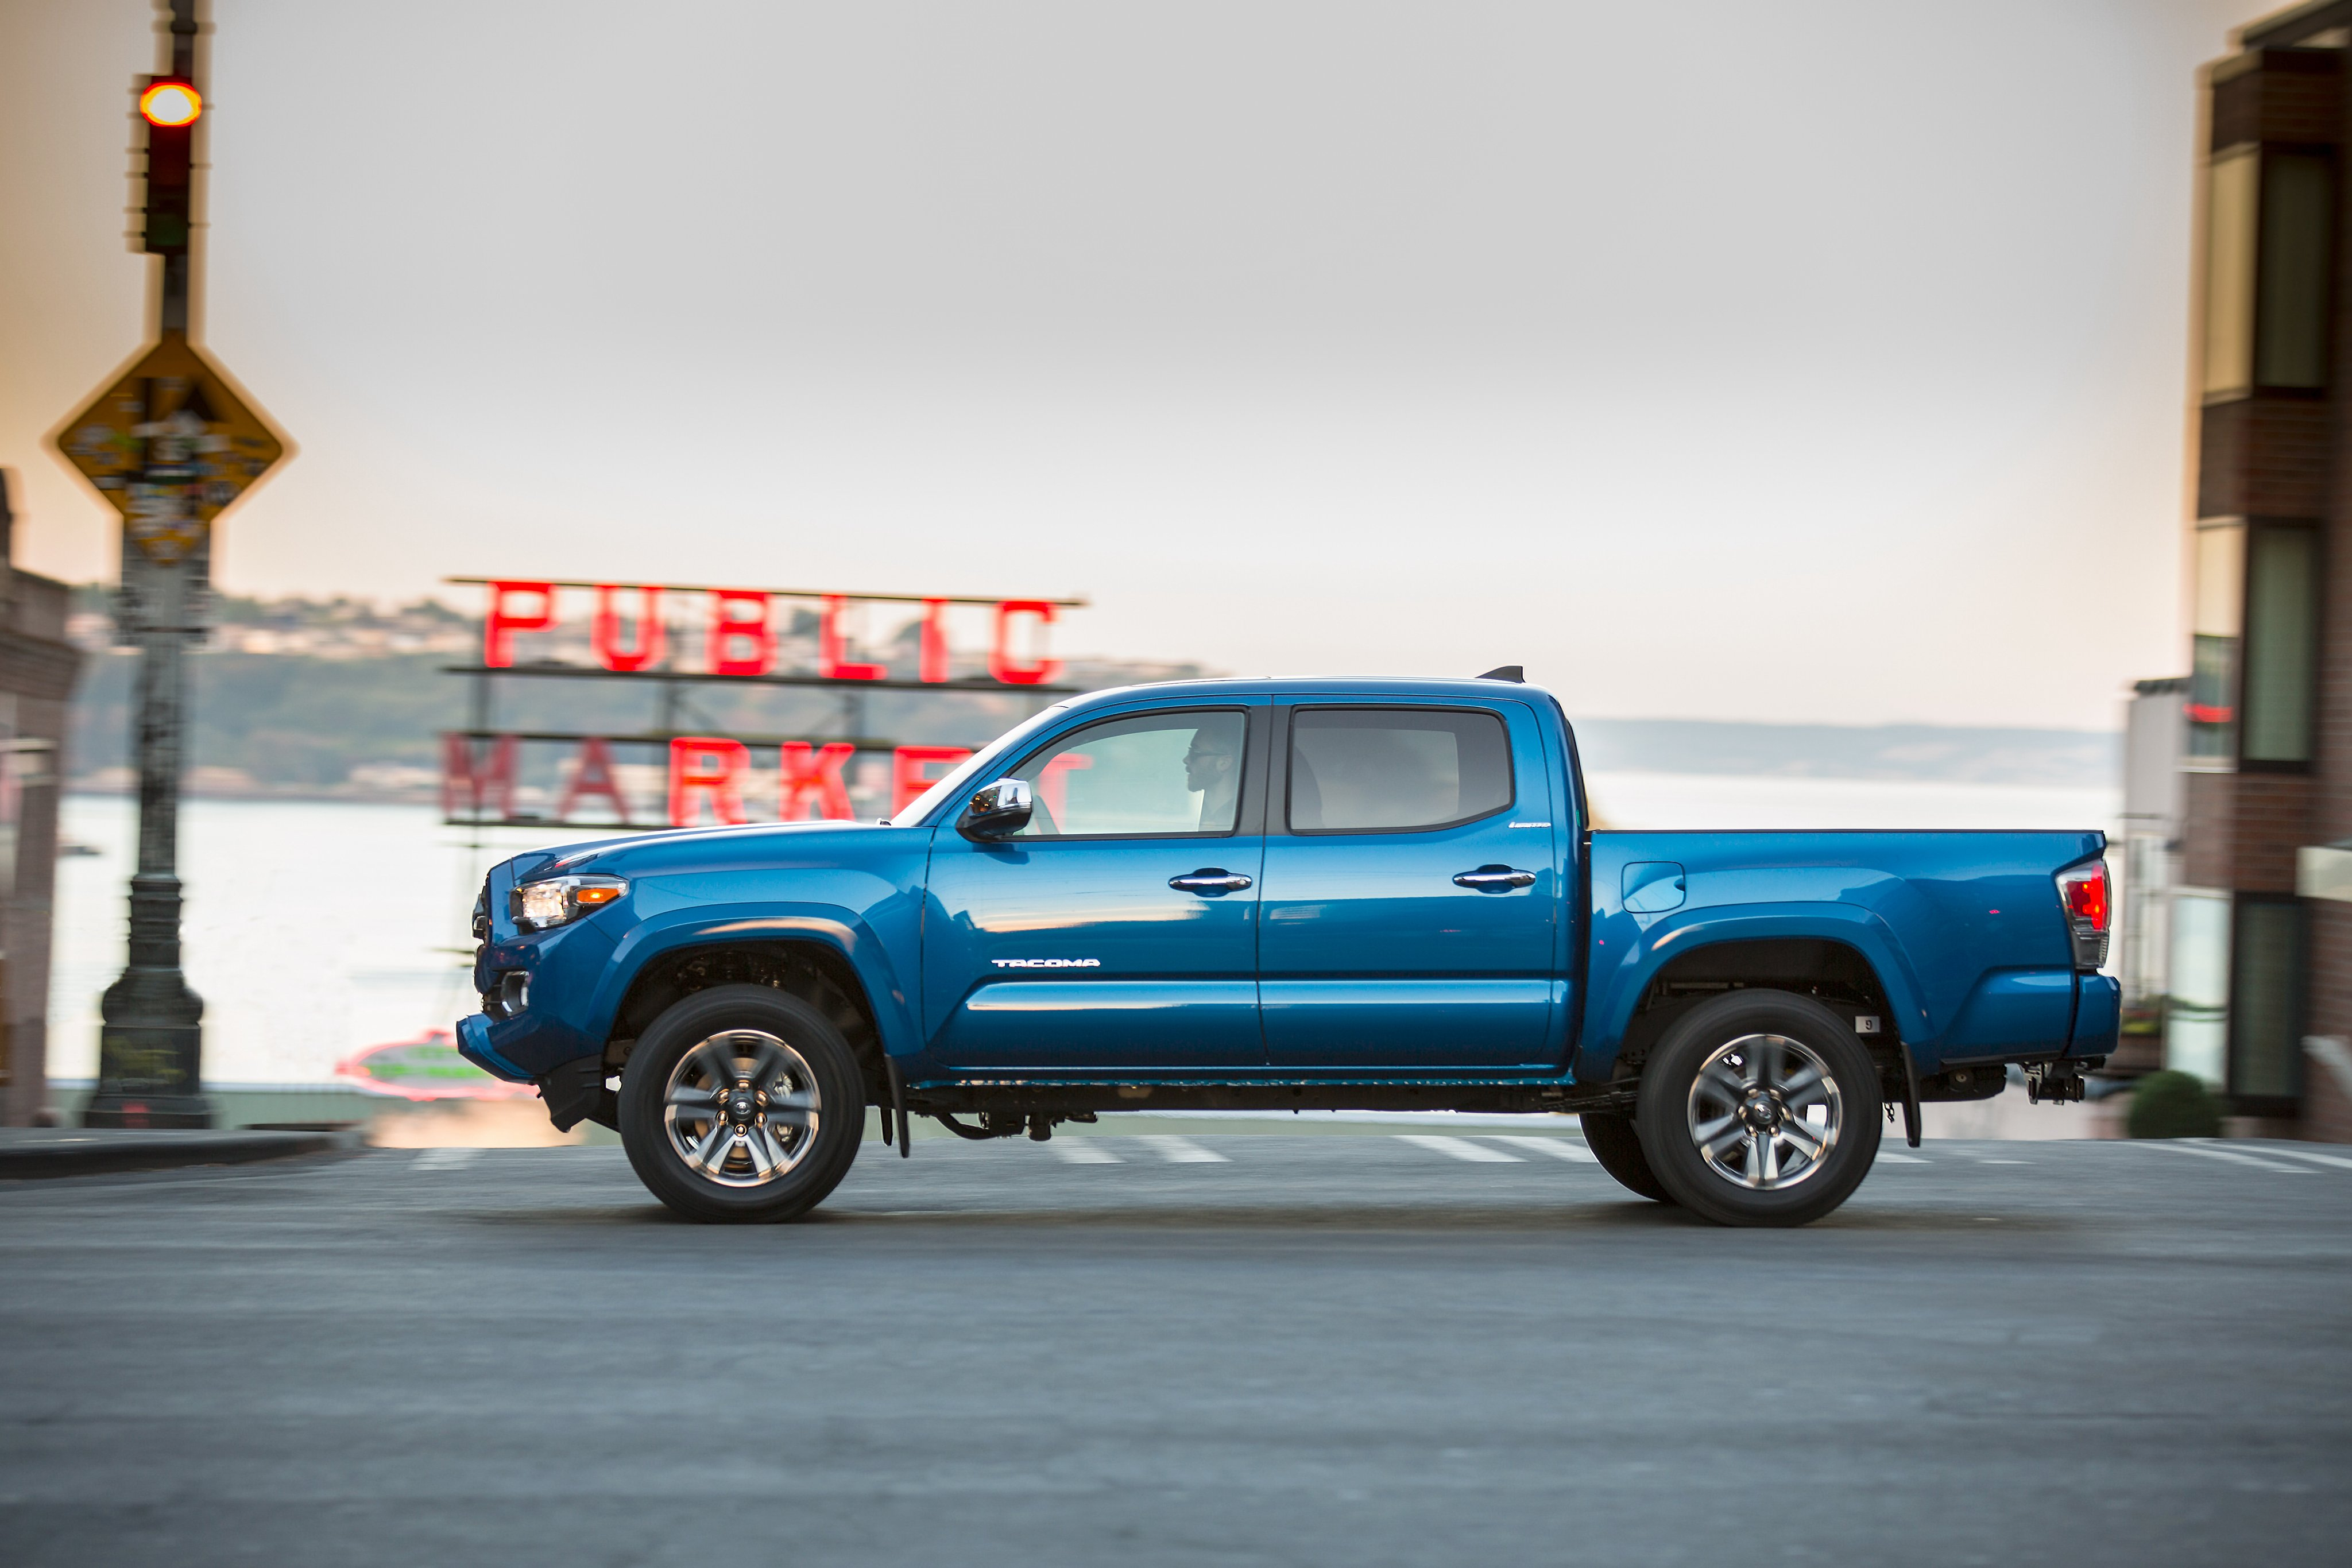 2016 Toyota Tacoma Limited DoubleCab pickup 4x4 wallpaper 4096x2731 4096x2731